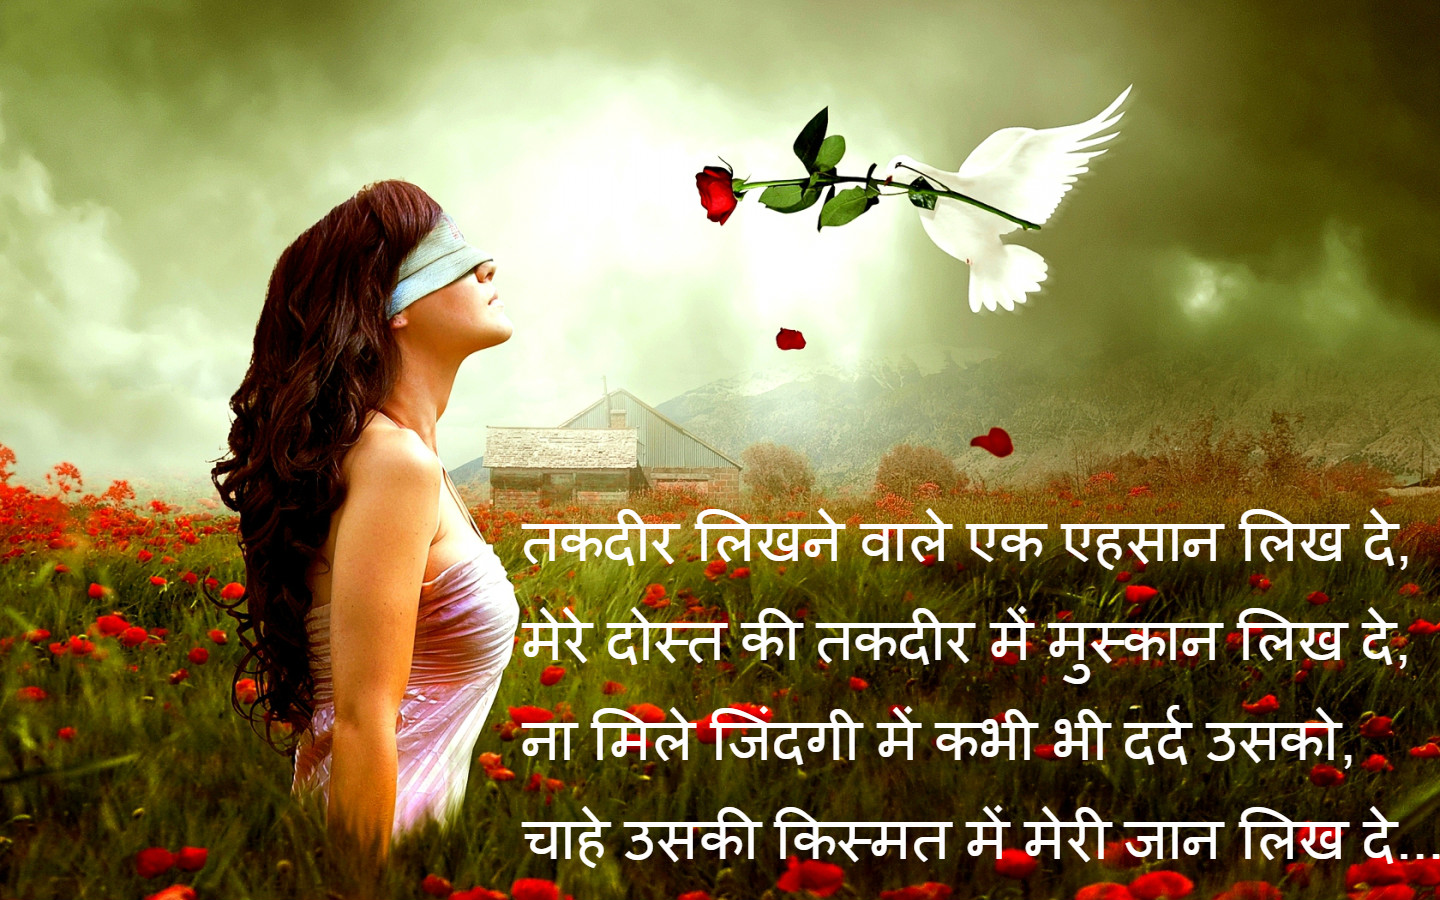 Muskan Girl Wallpaper Shayari Hi Shayari Excellent Images Download Dard Ishq